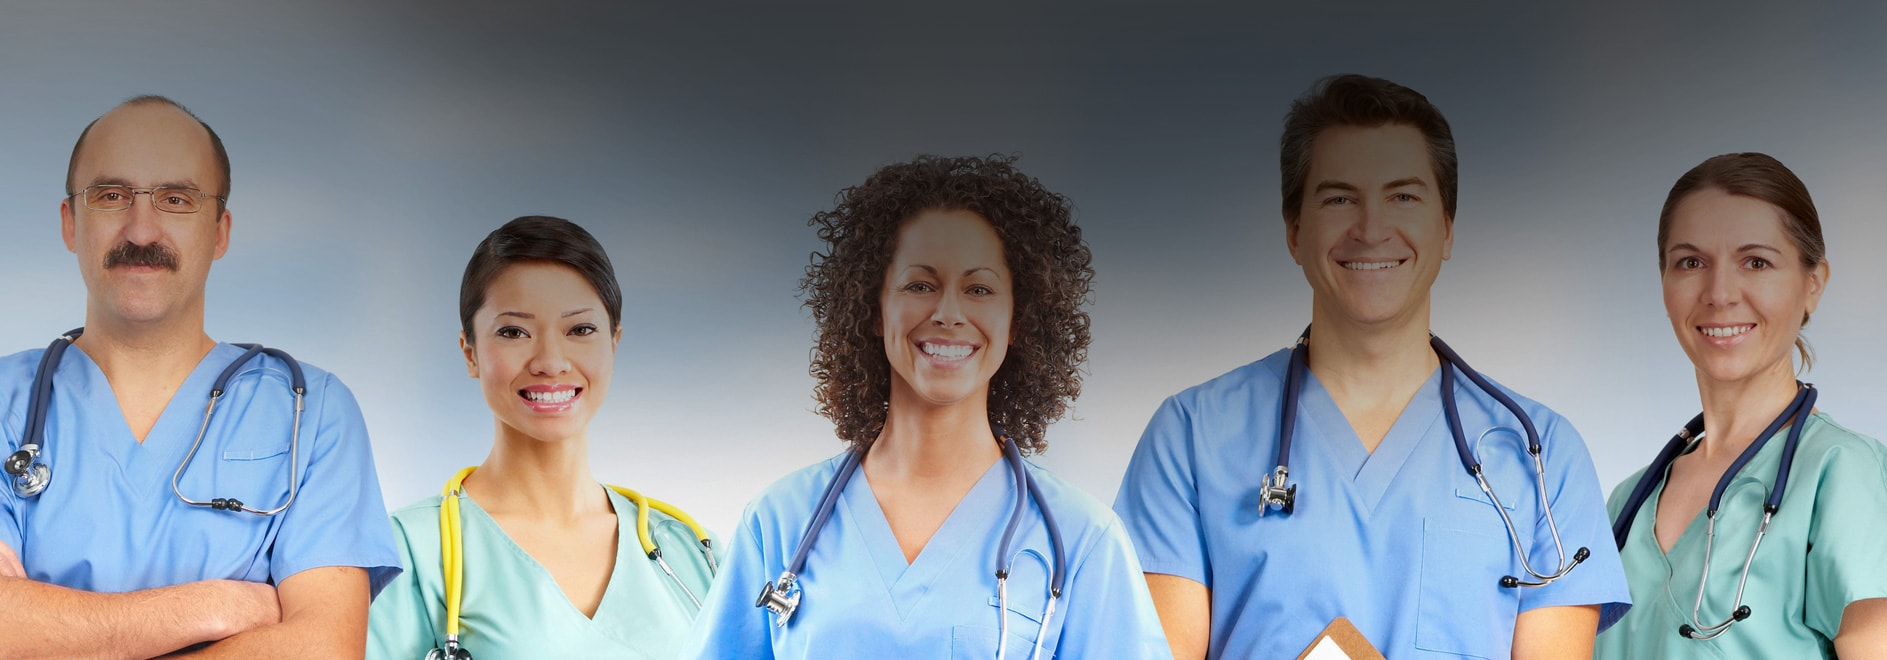 WEB DESIGN DOCTOR OFFICES MEDICAL PRACTICES